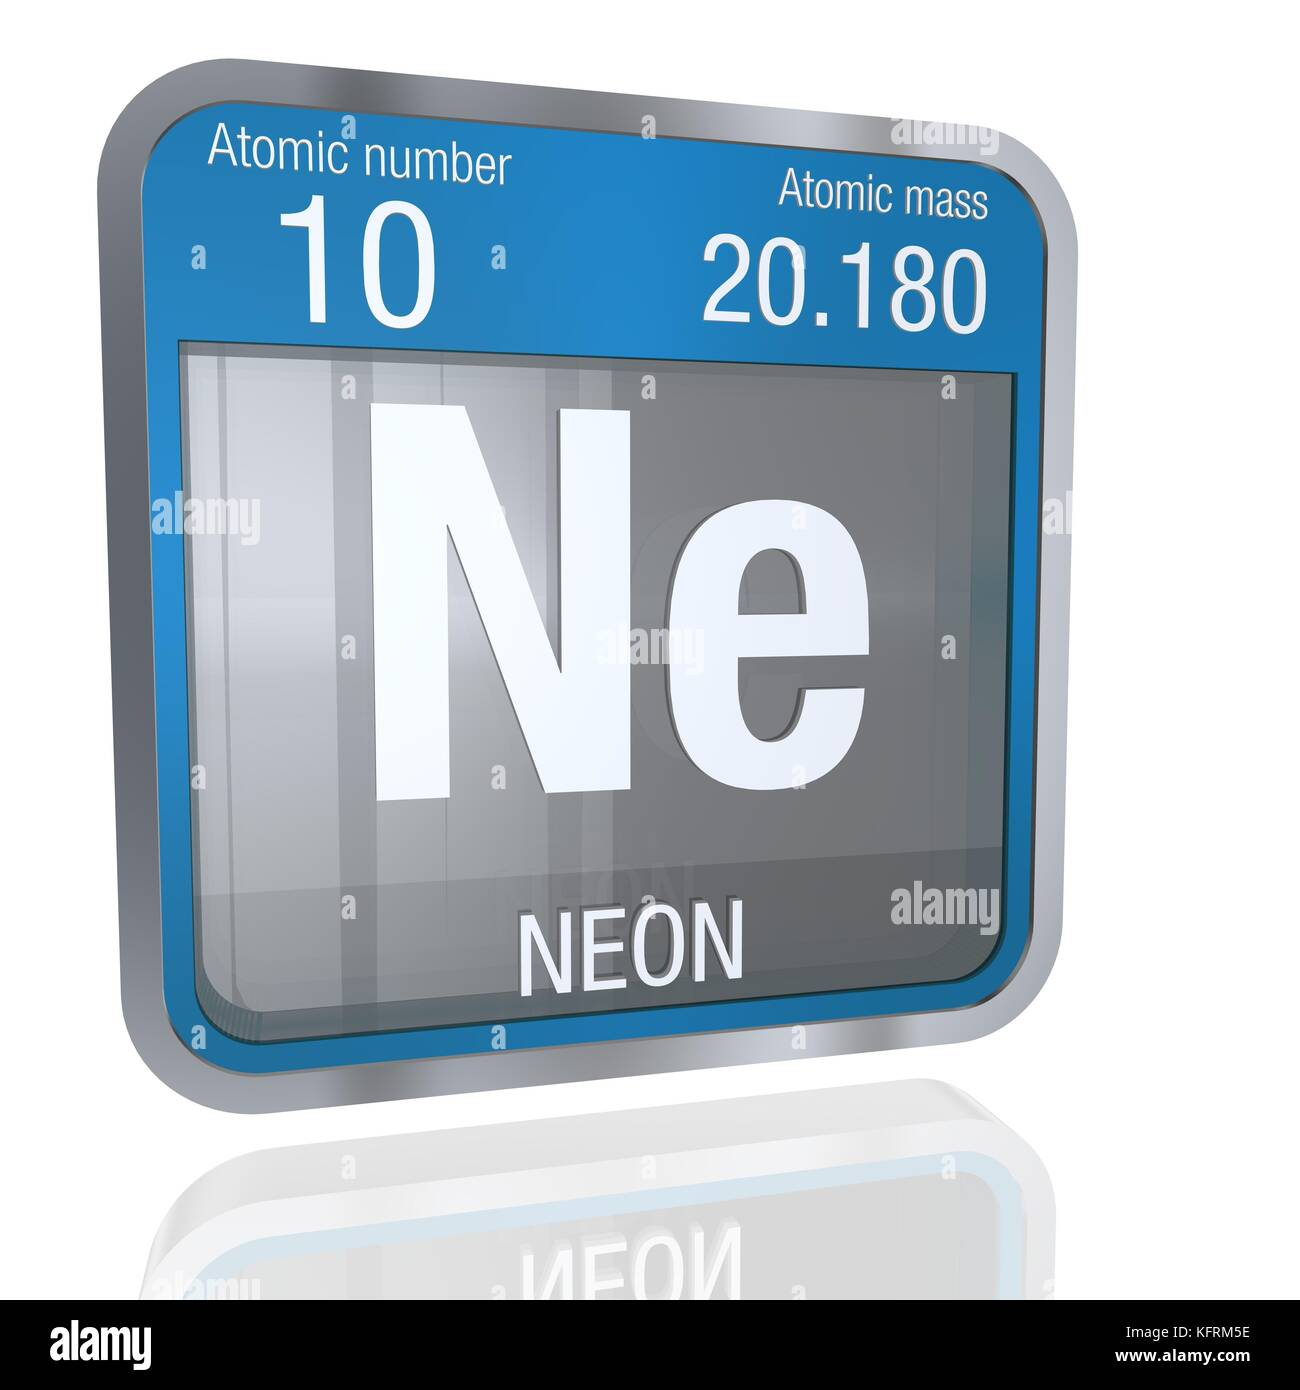 Neon atomic structure stock photos neon atomic structure stock neon symbol in square shape with metallic border and transparent background with reflection on the floor urtaz Images